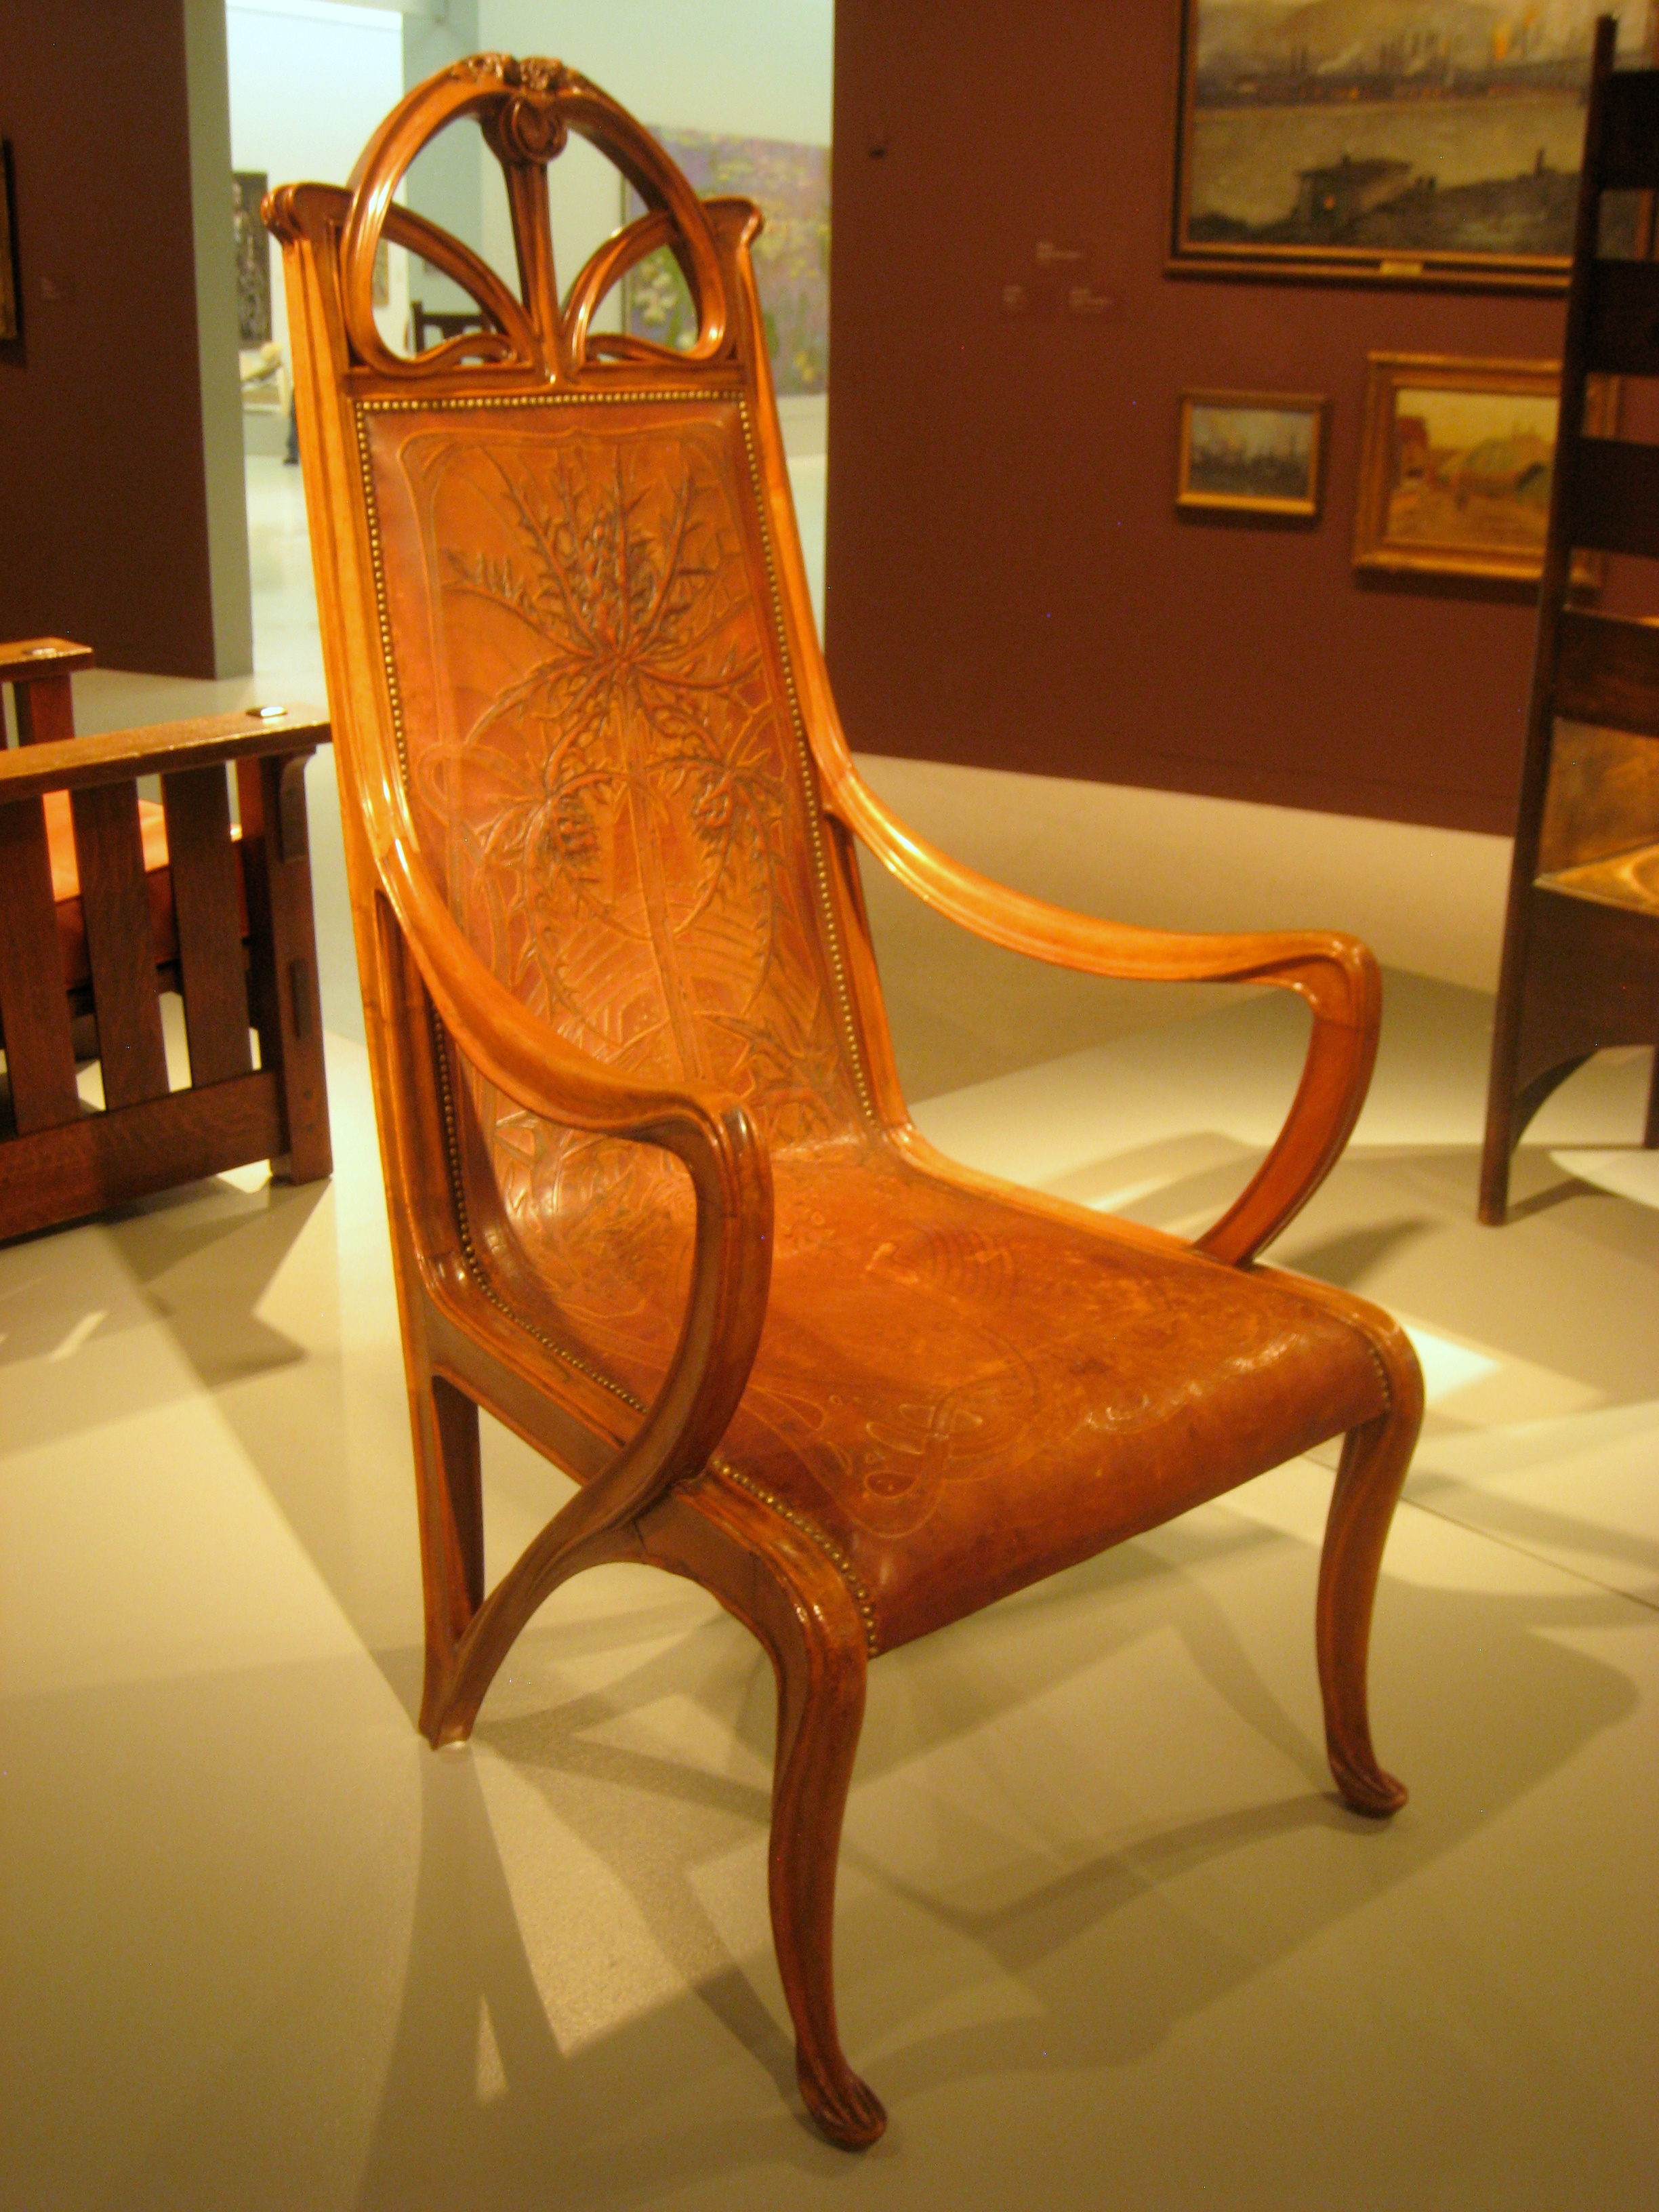 FileArmchair Louis Majorelle 1900 IMG 1639JPG